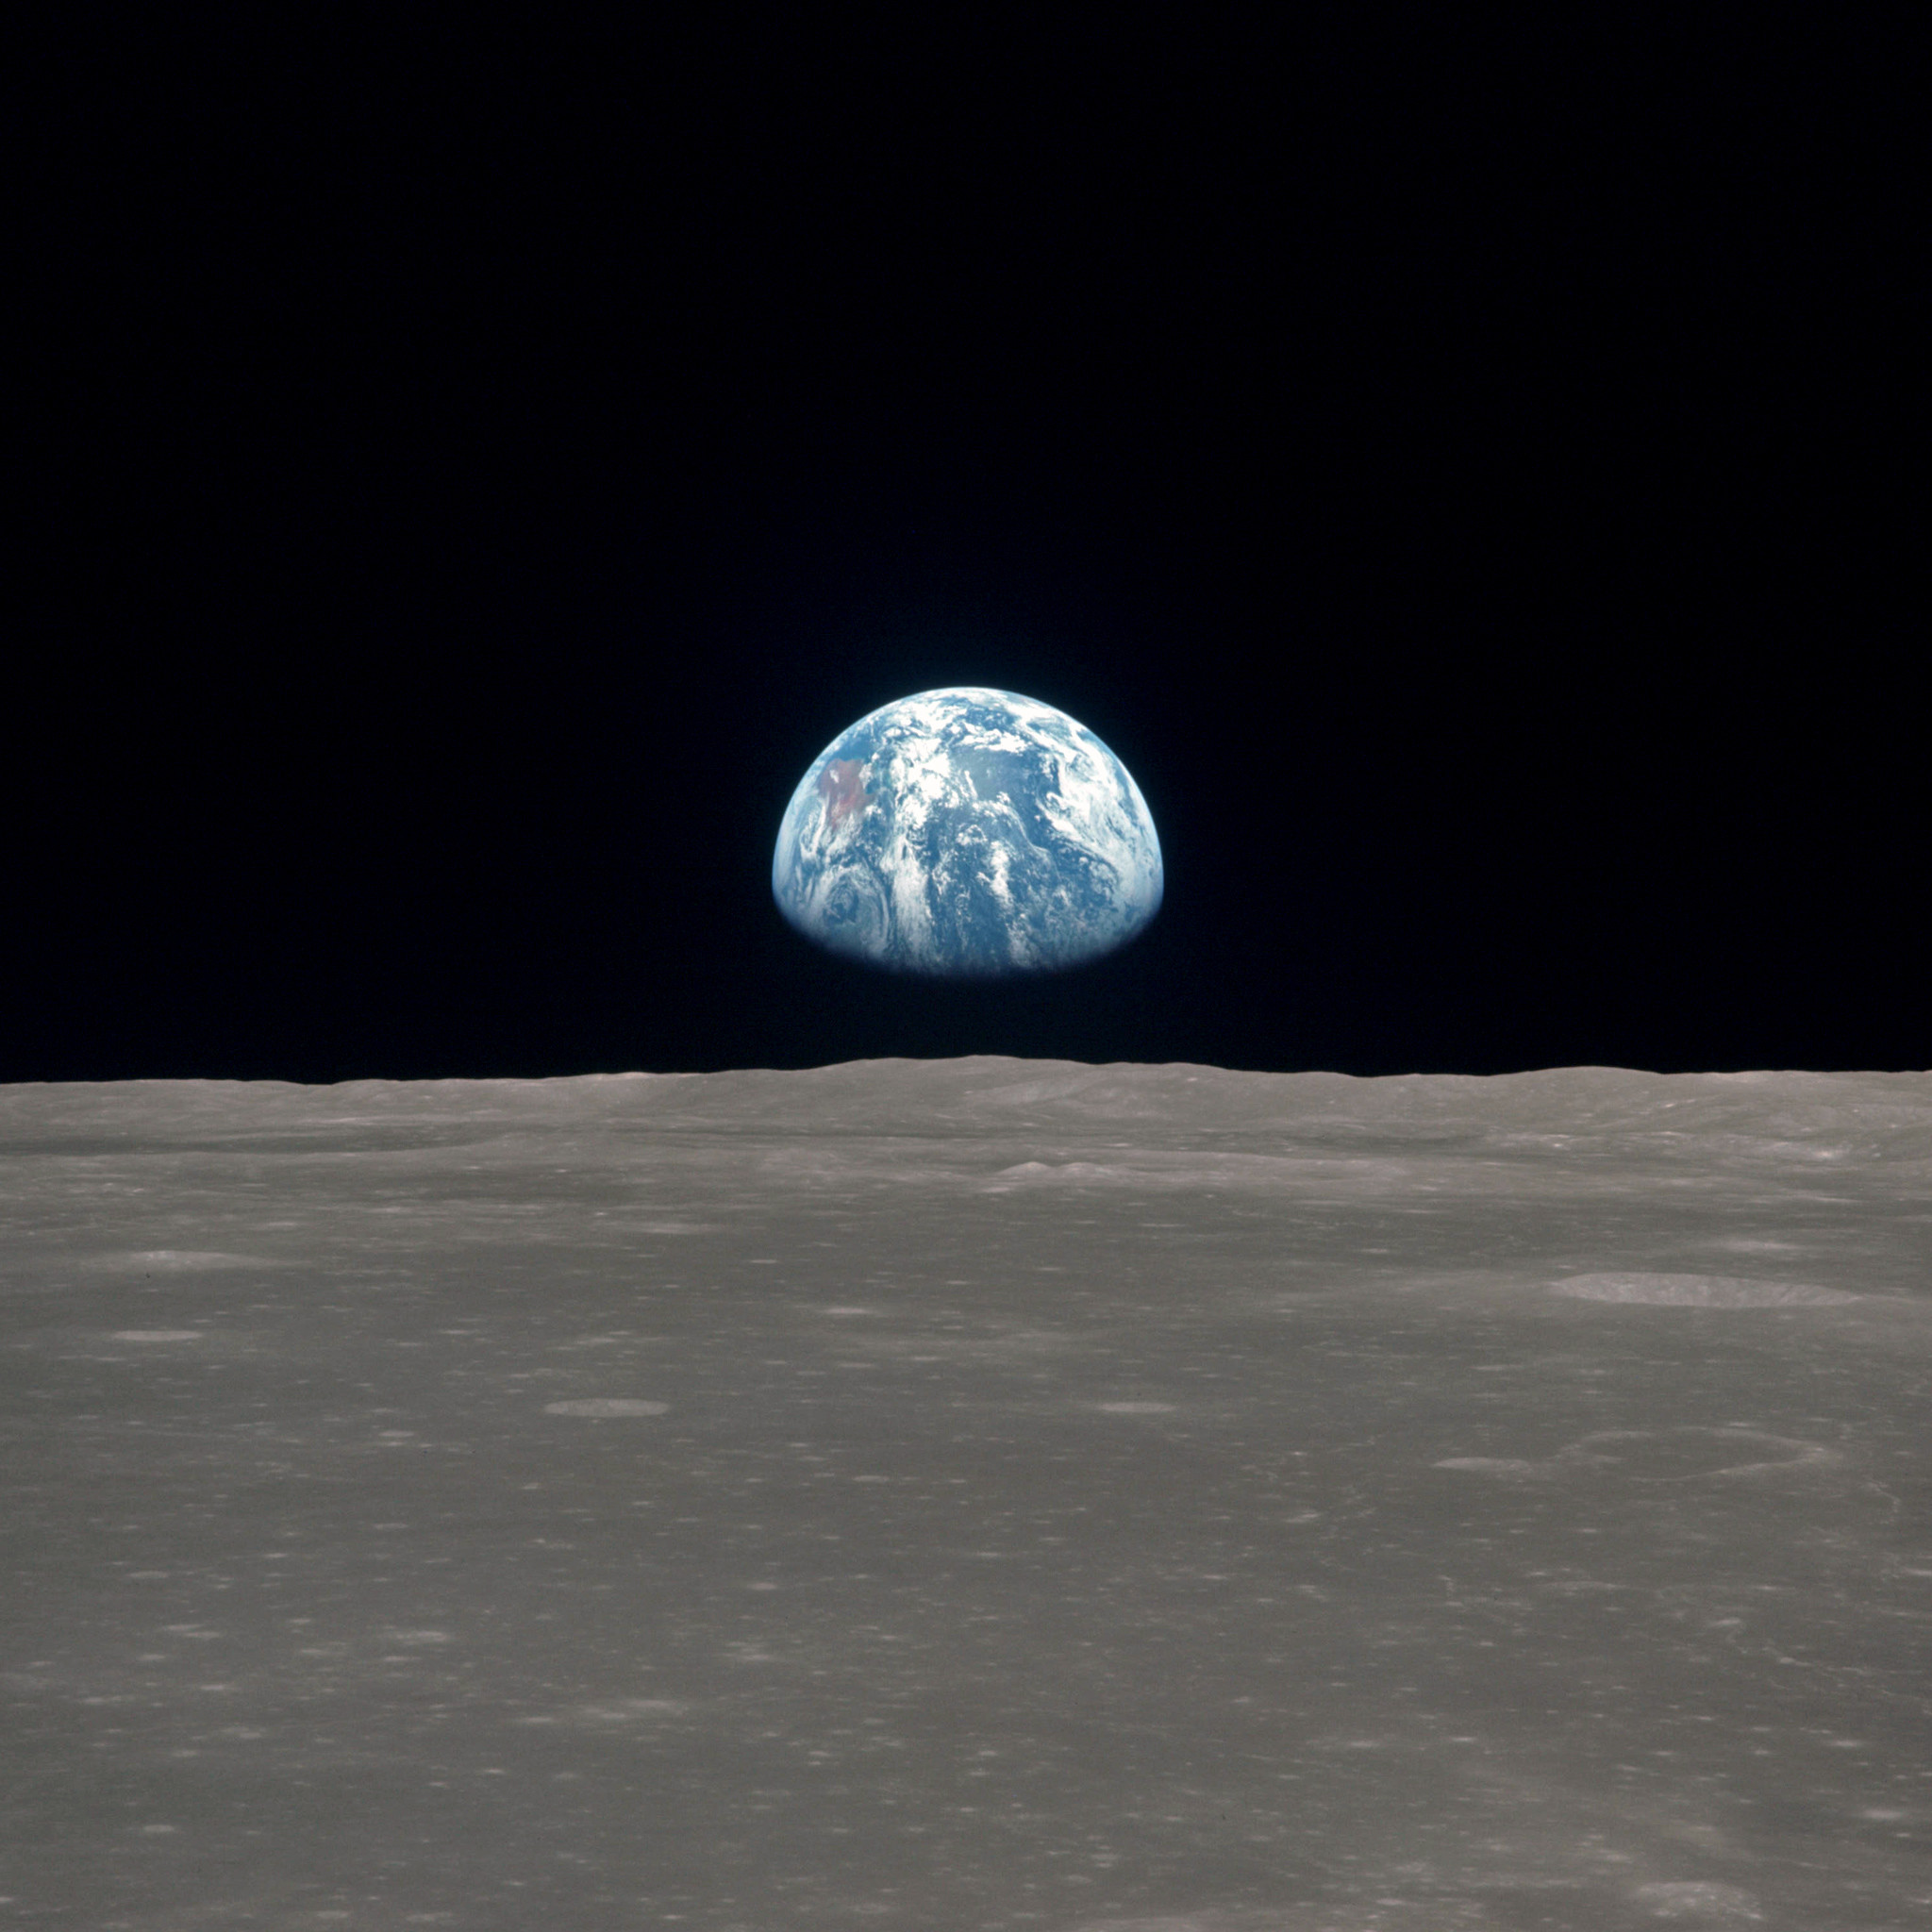 Res: 2048x2048, nasa - as11-44-6550 planet earth seen from the moon ipad wallpaper